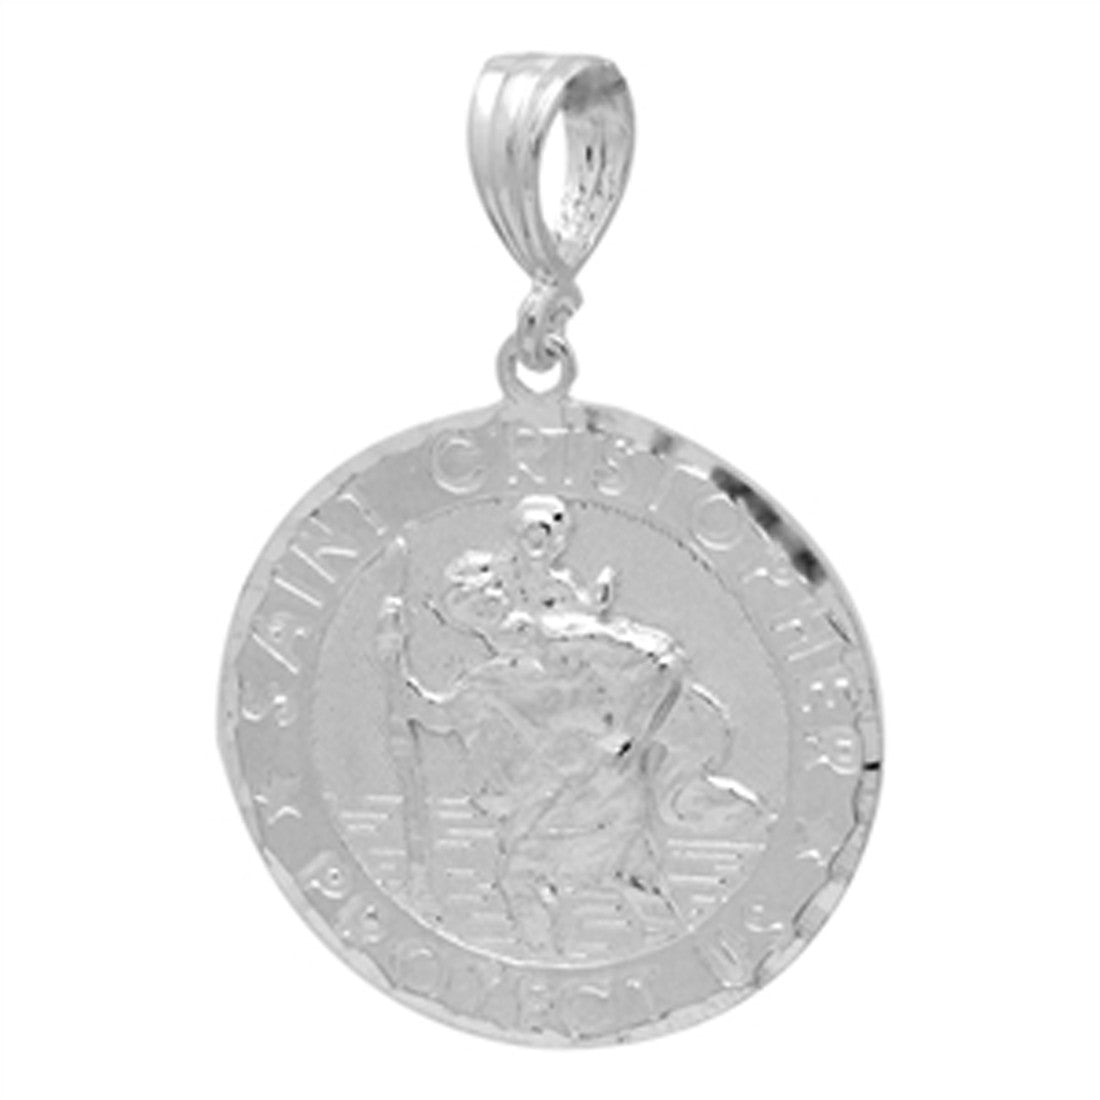 Saint Cristopher Pendant 925 Sterling Silver Diamond Cut charm 27mm Long-Blue Apple Jewelary